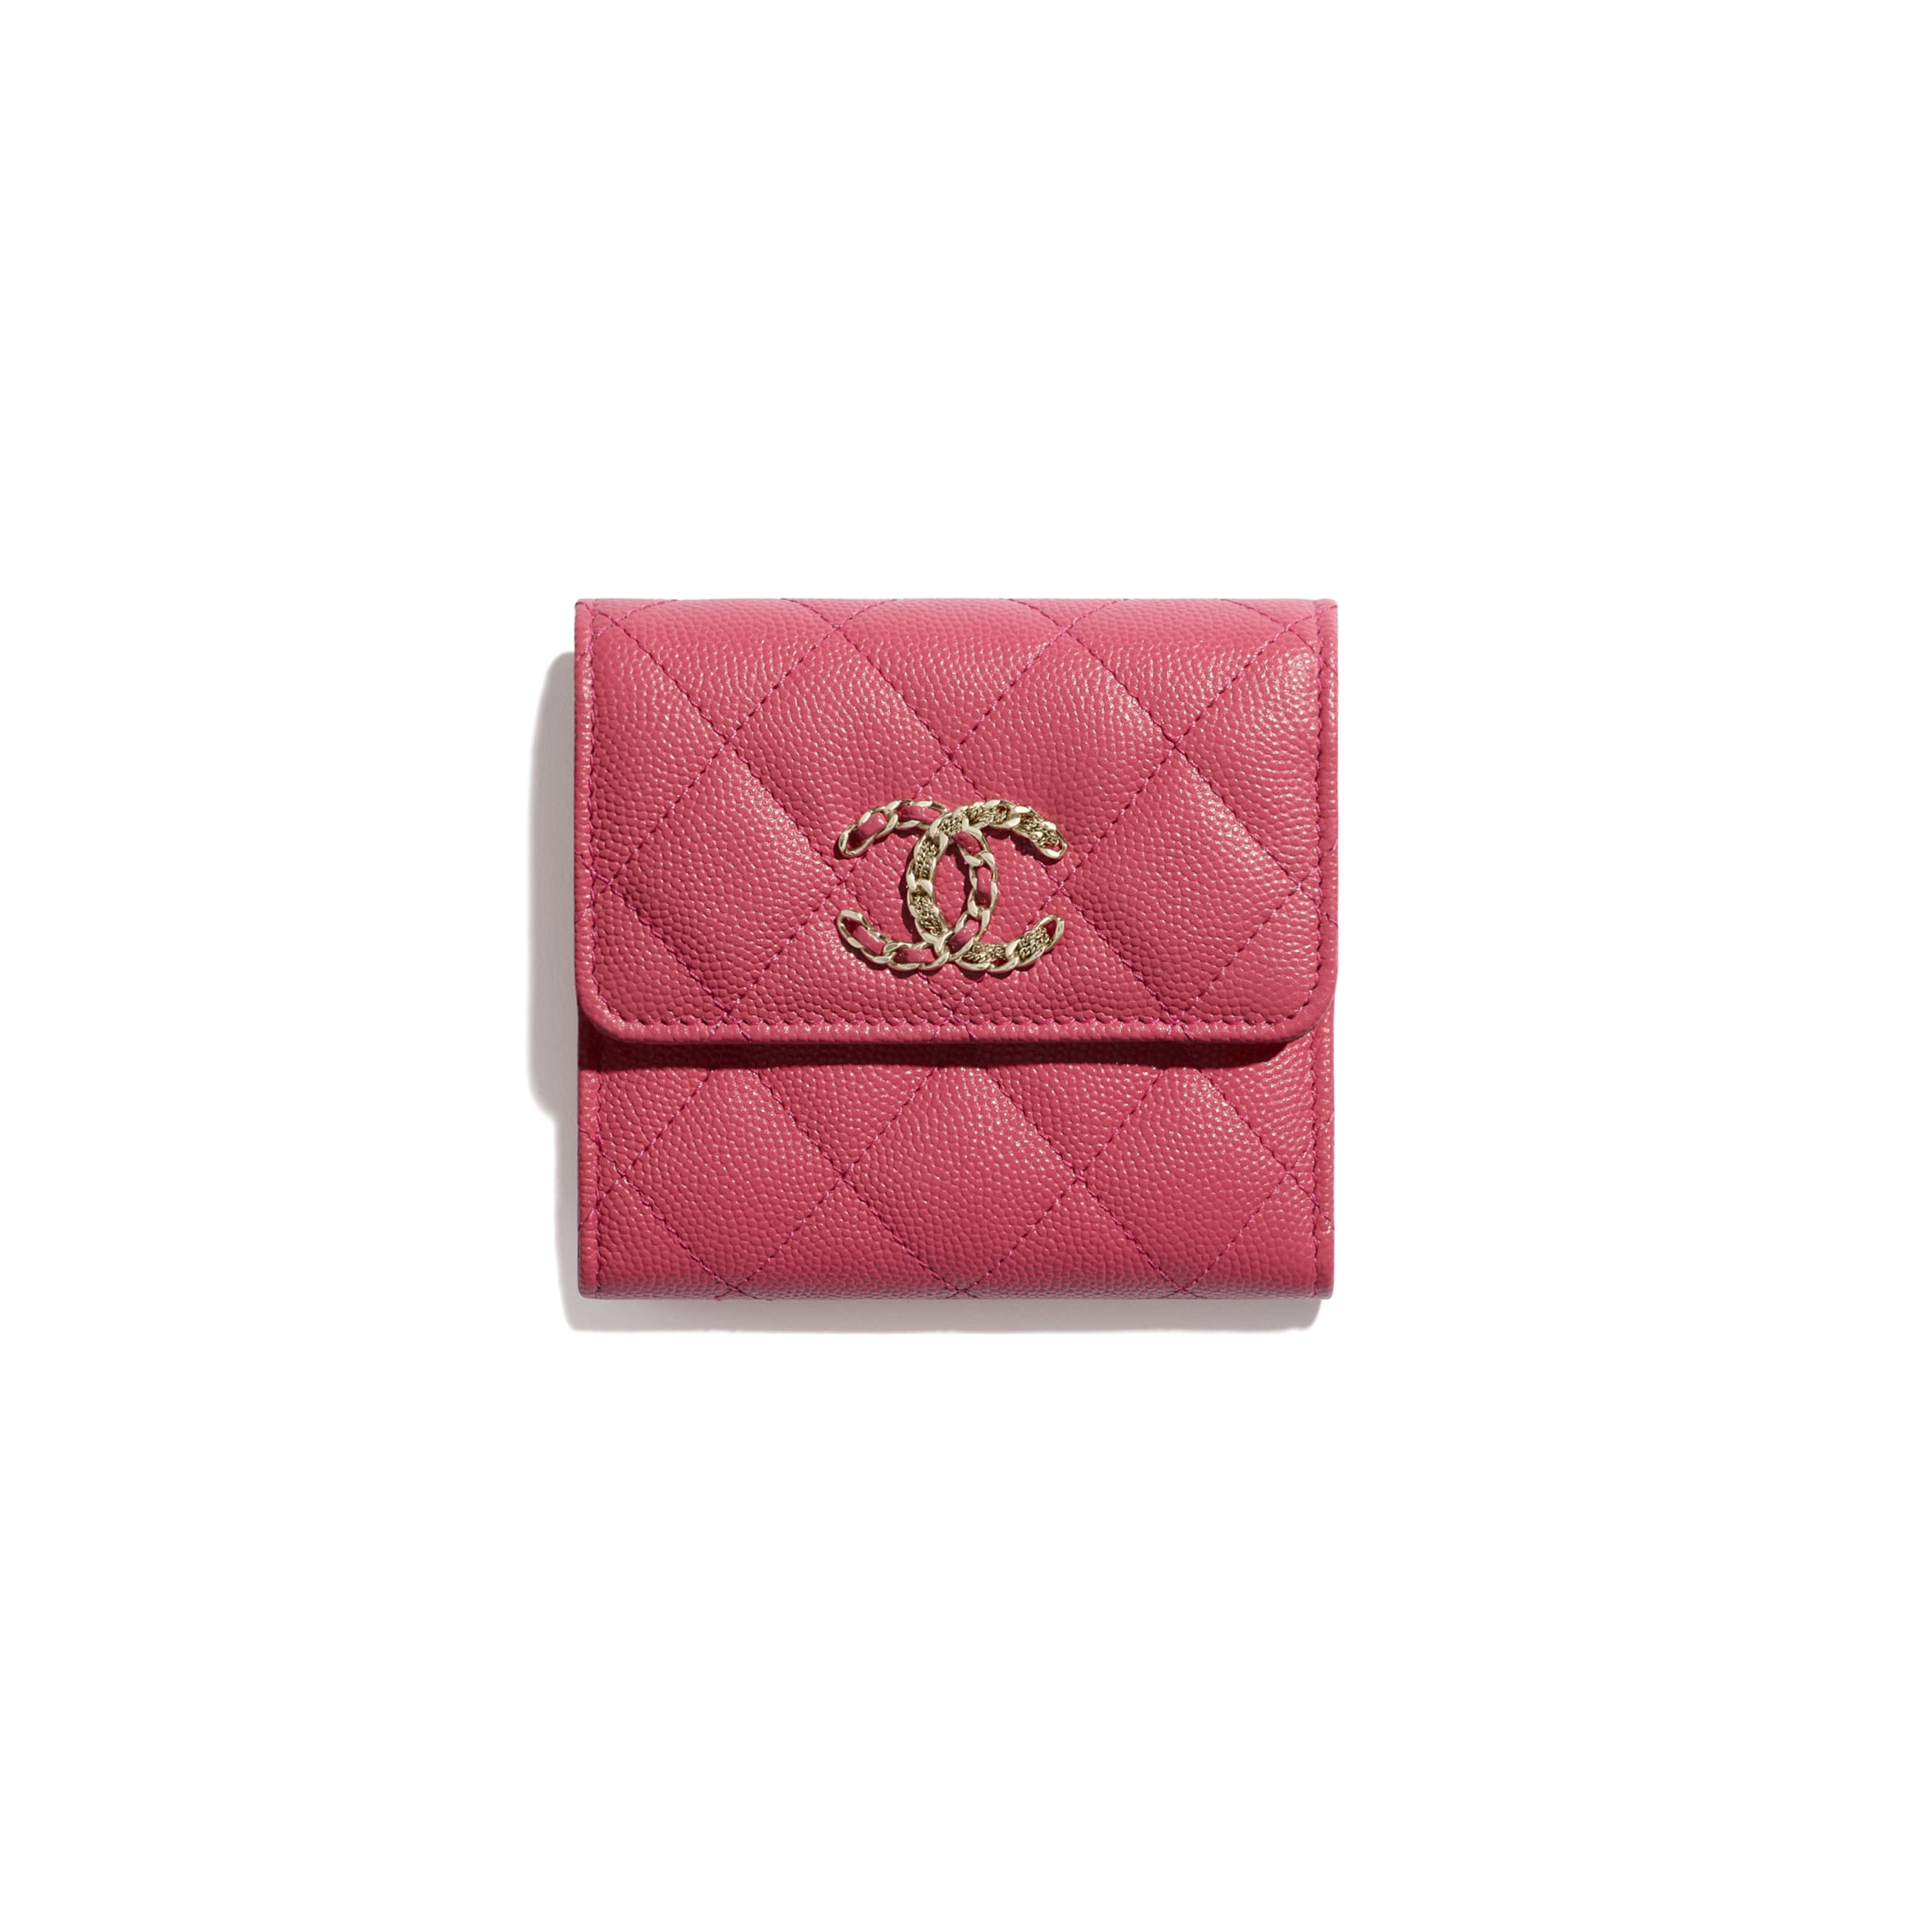 Small Flap Wallet - Pink - Grained Calfskin & Gold-Tone Metal - CHANEL - Default view - see standard sized version